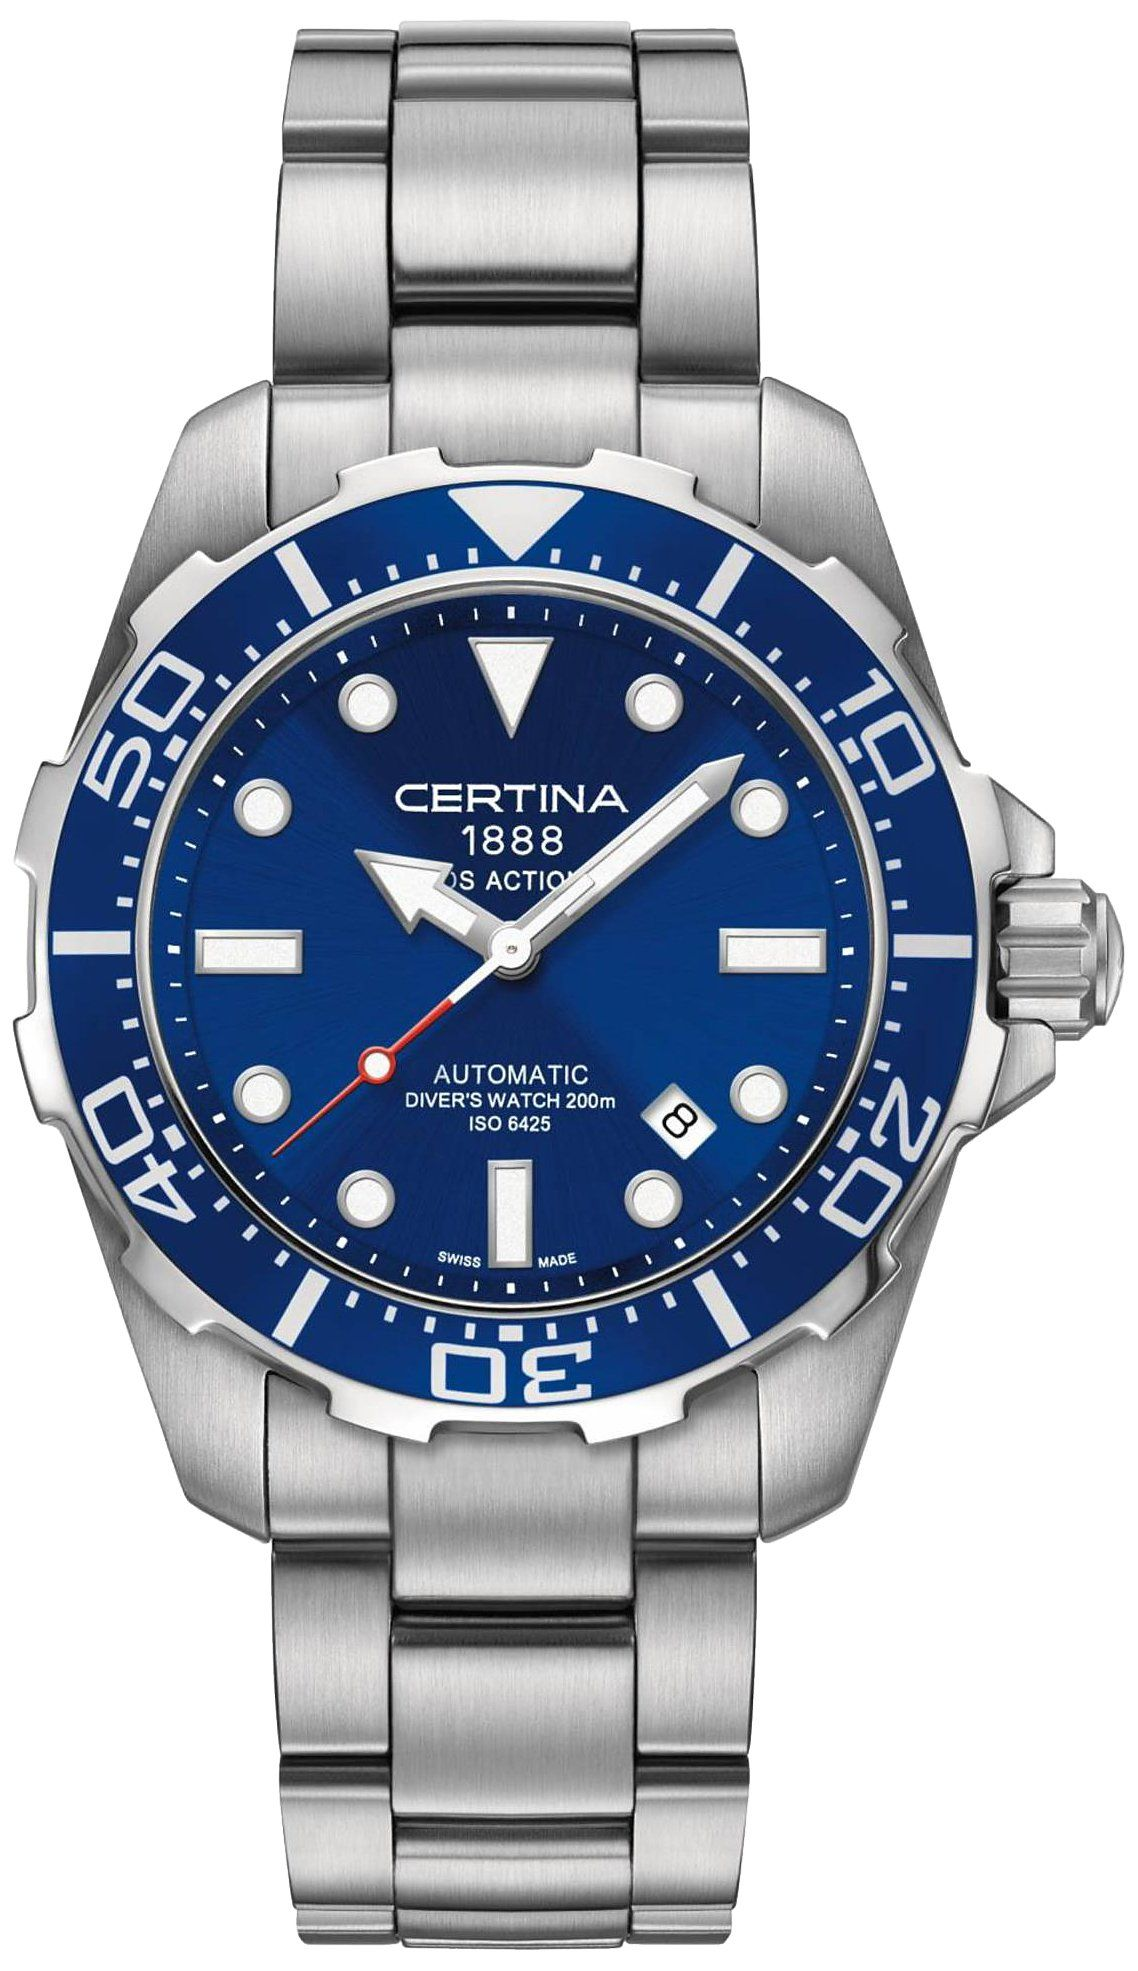 Robot Check Certina Watches Dive Watches Watches For Men